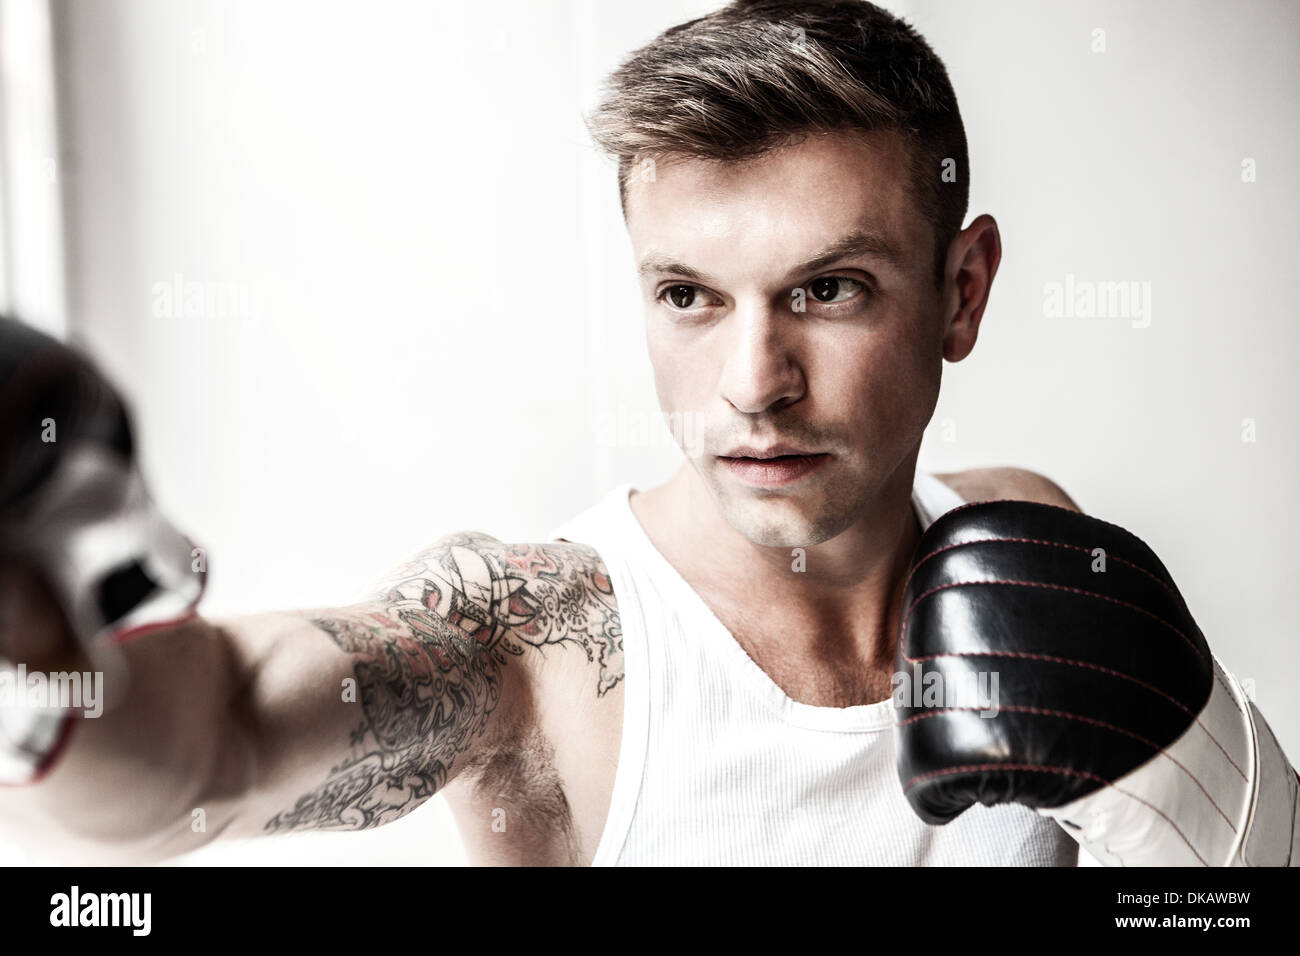 Portrait of mid adult man boxing Photo Stock